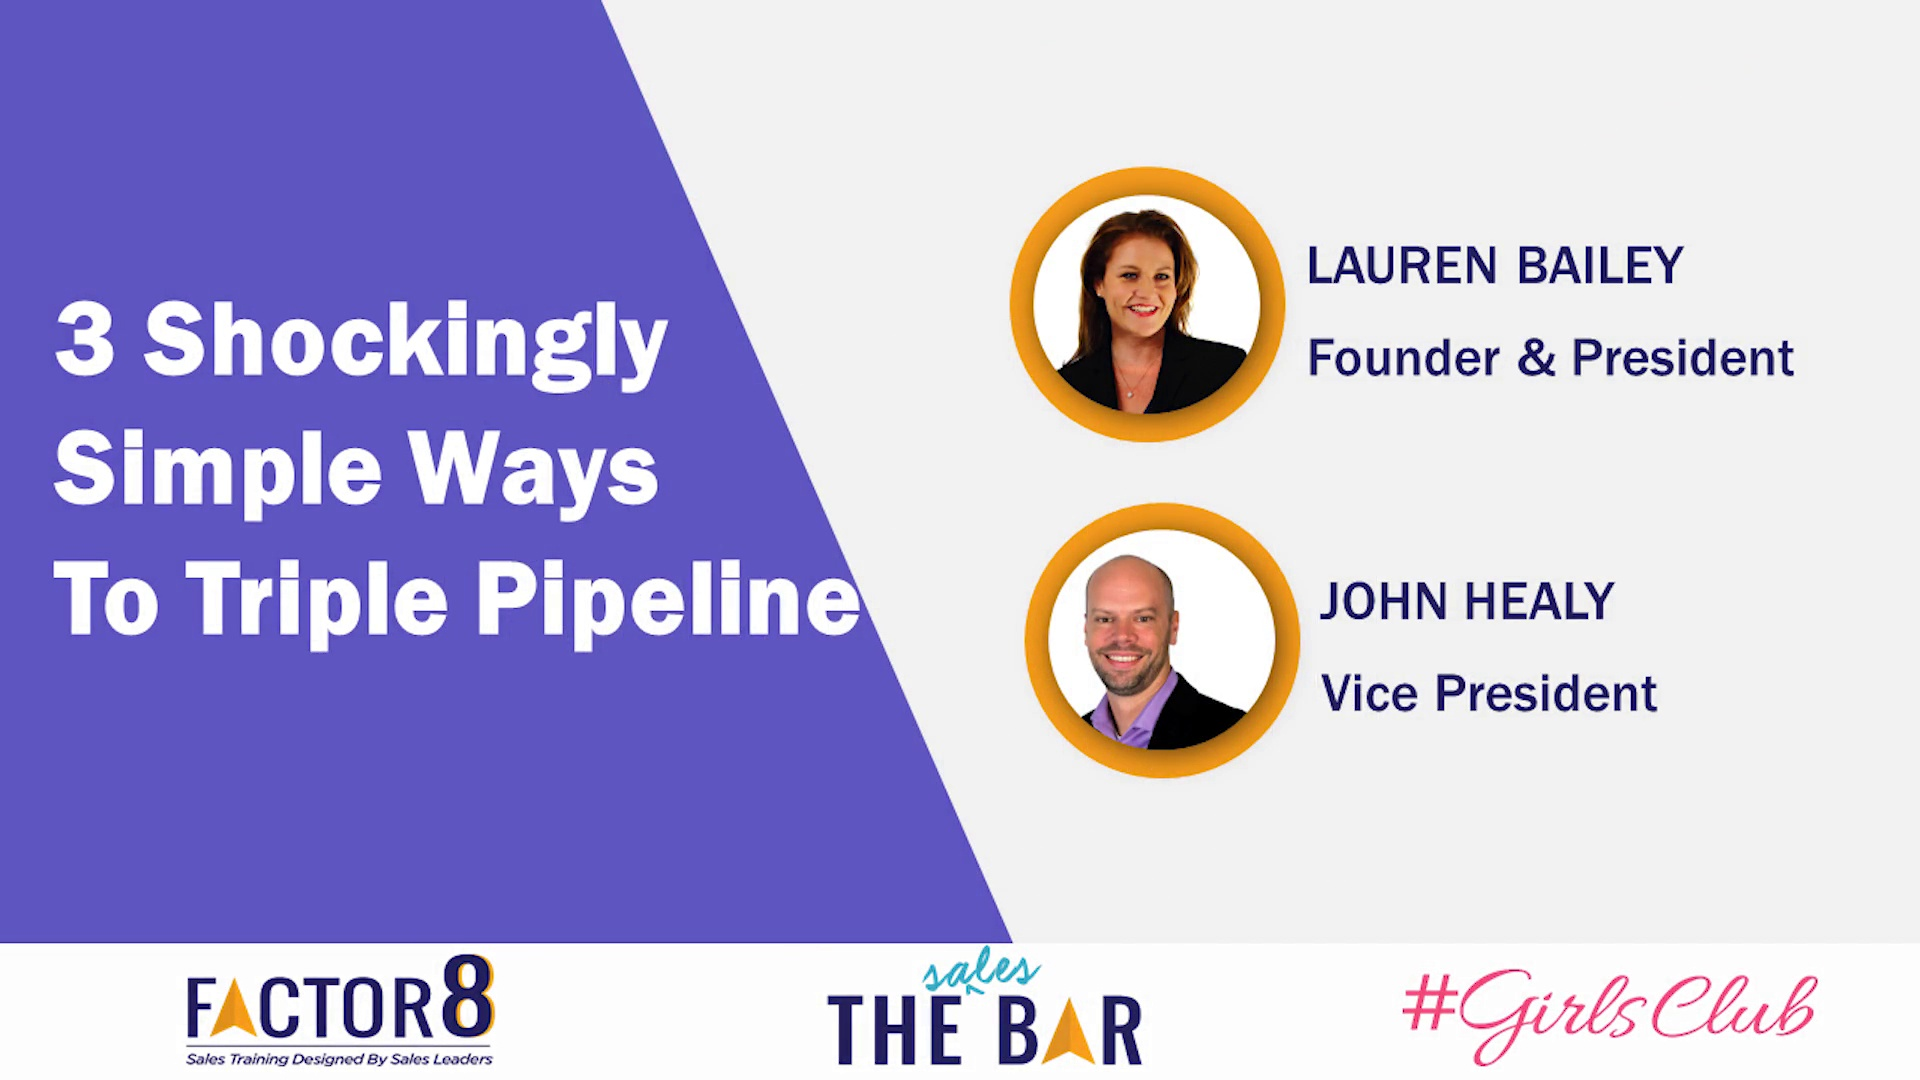 3 Shockingly Simple Ways to Triple Pipeline - Lauren Bailey, John Healy